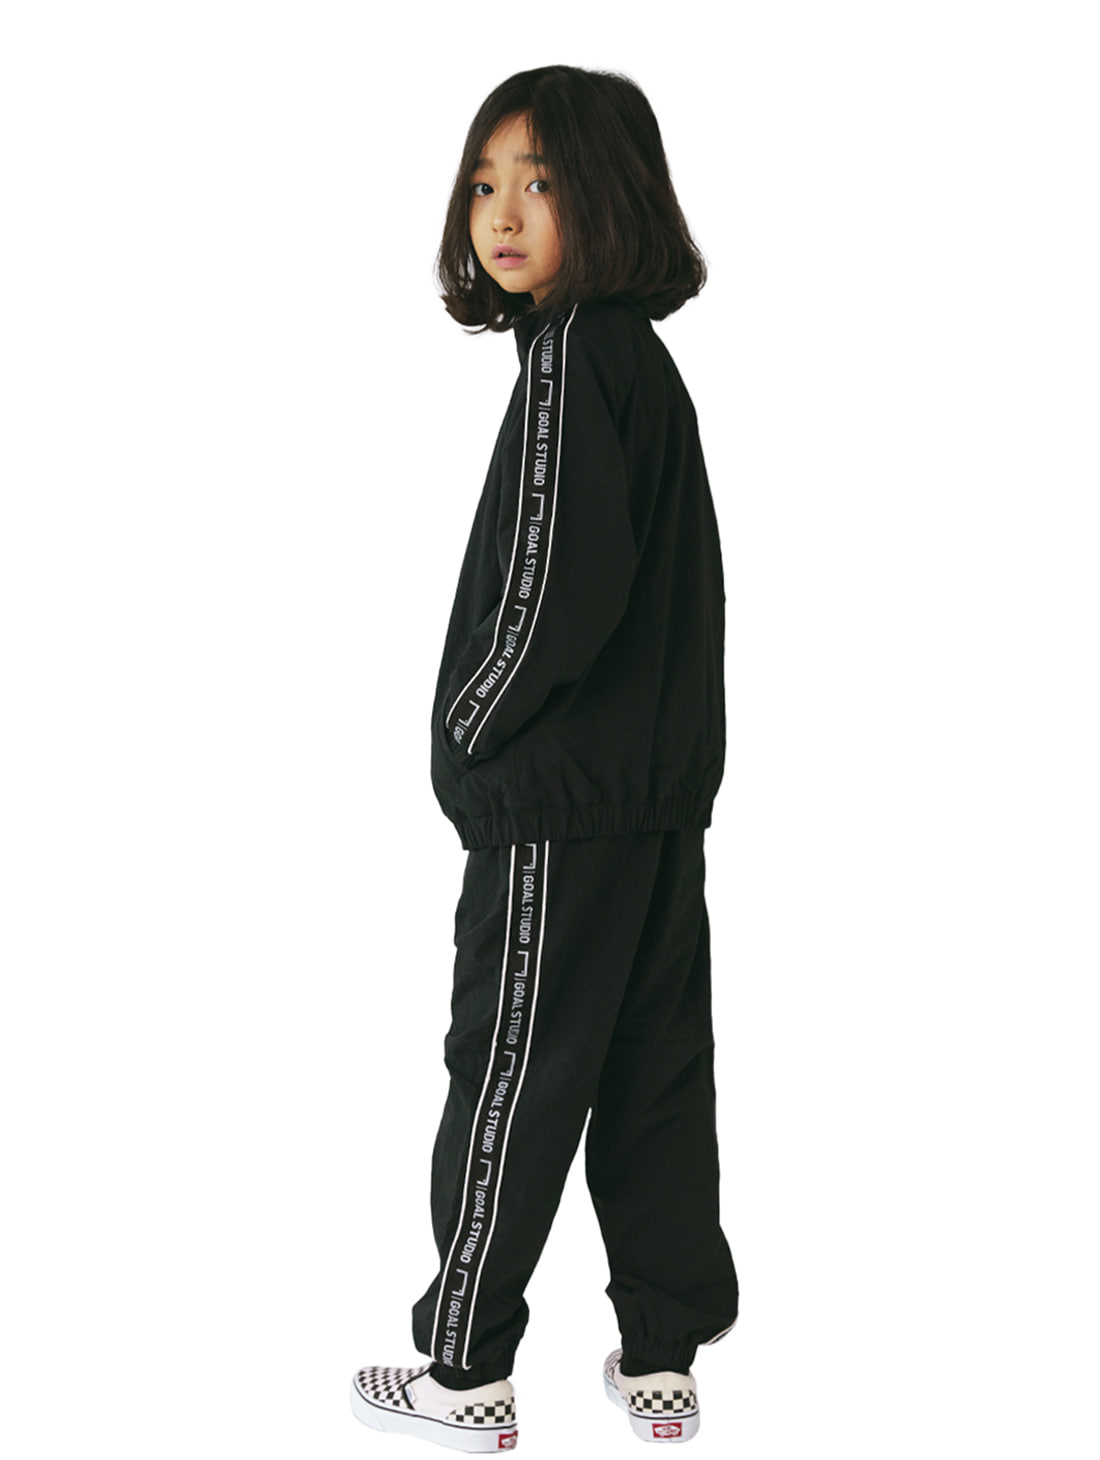 GOALSTUDIO [10% OFF] (KIDS) SMALL LOGO TRACK JACKET & PANTS SET - BLACK